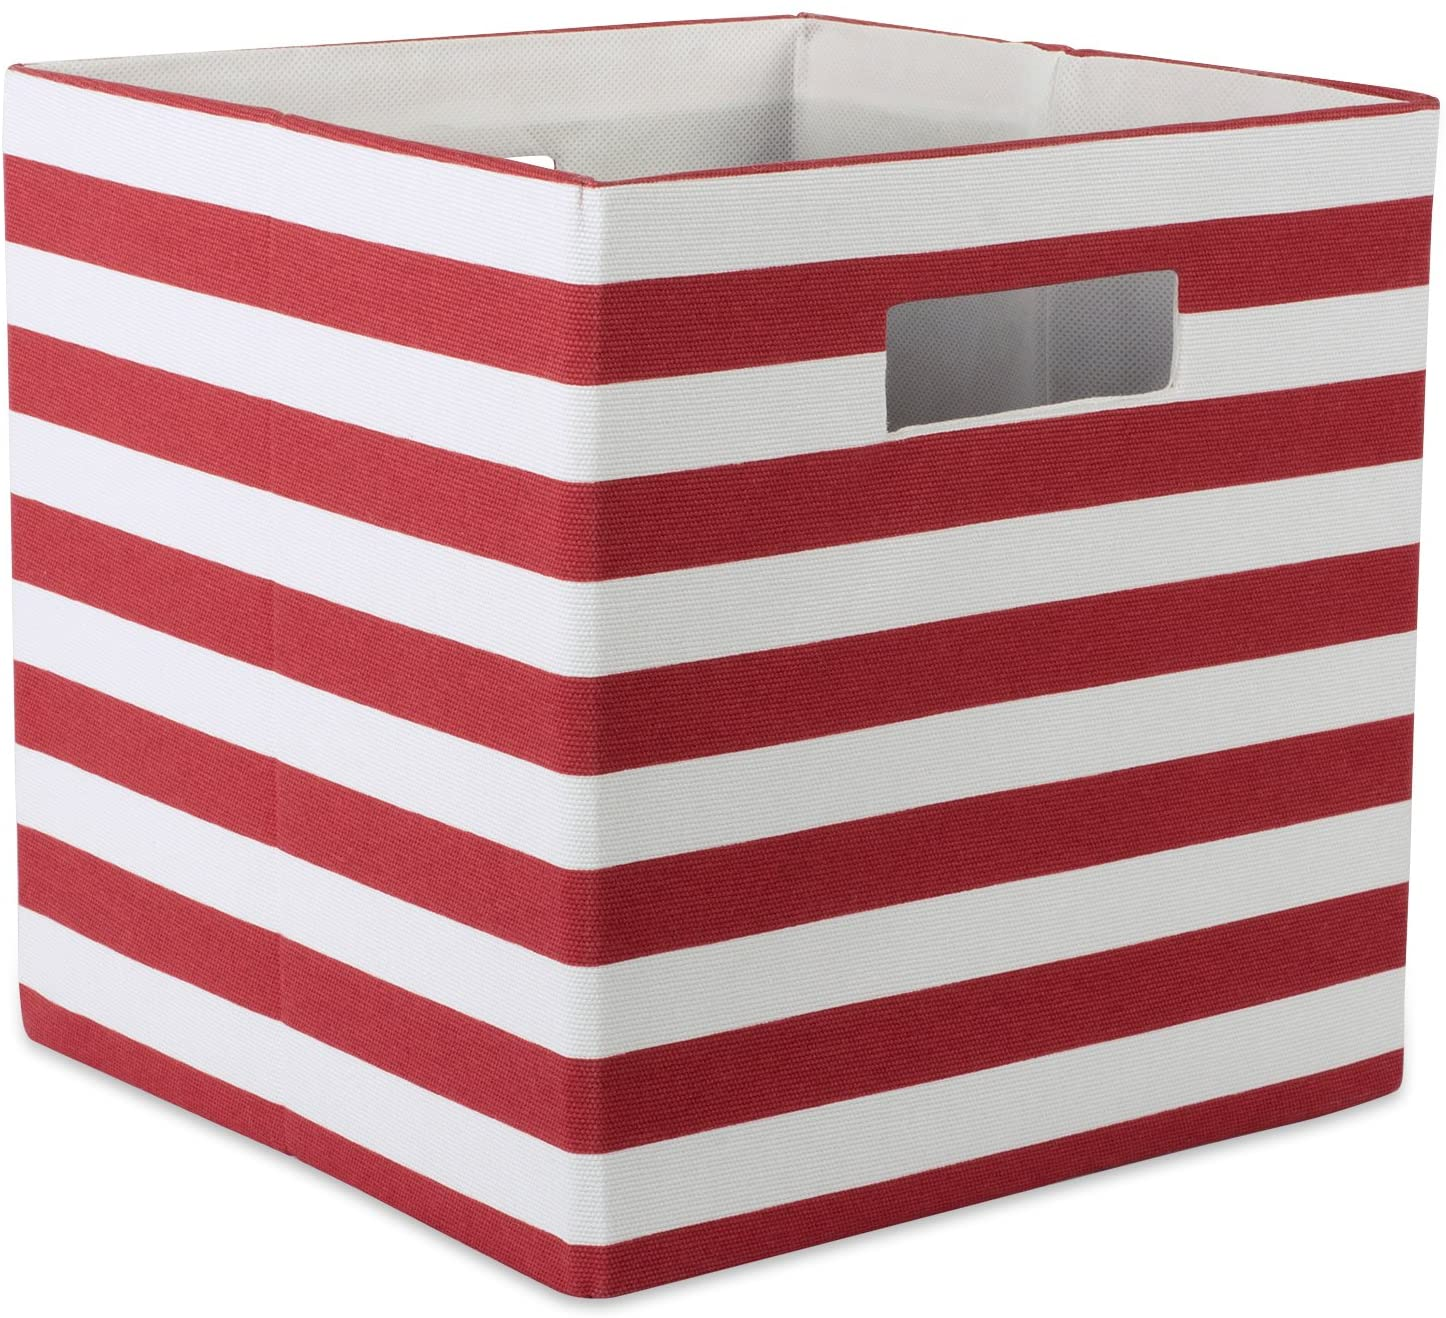 DII Printed Polyester Storage Bin 13 x 13 x 13, Stripe Rust, Large